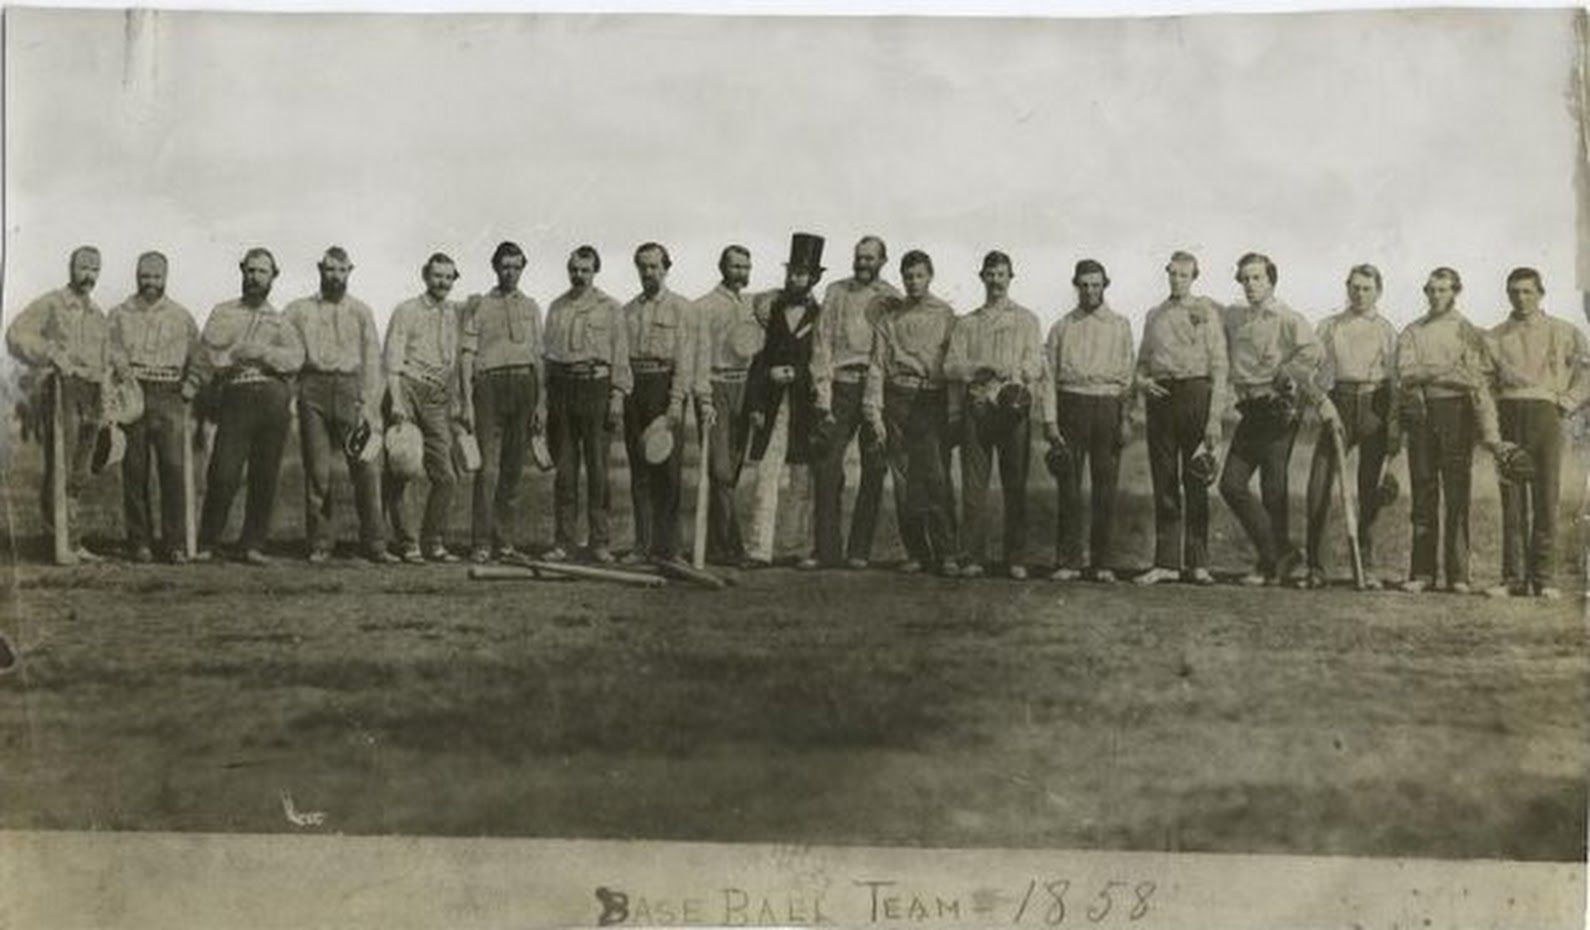 The first ever team photo in baseball history, The